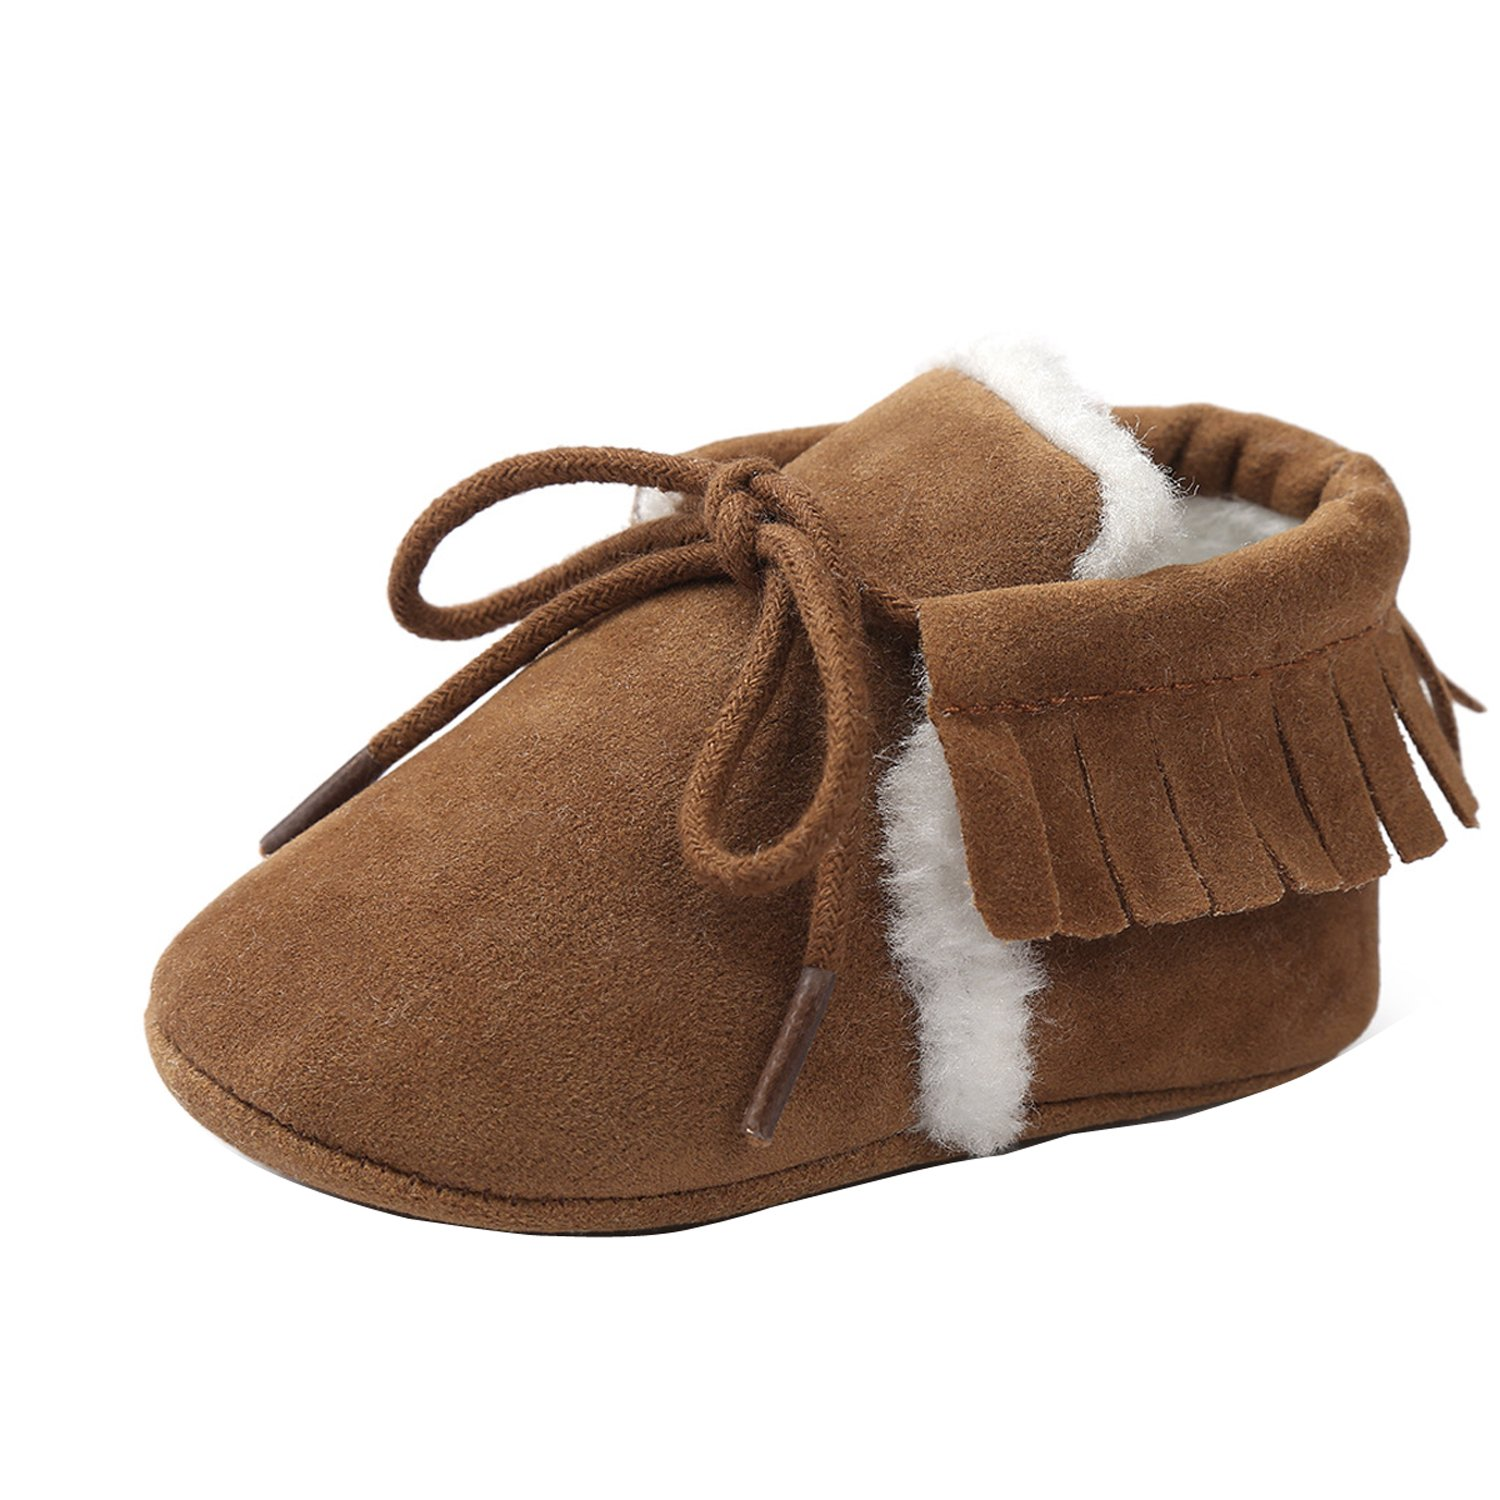 df352661d2f0a Comfy Baby Boys Girls Winter Fur Suede Prewalker Shoes Child Soft Sole Crib  Boot